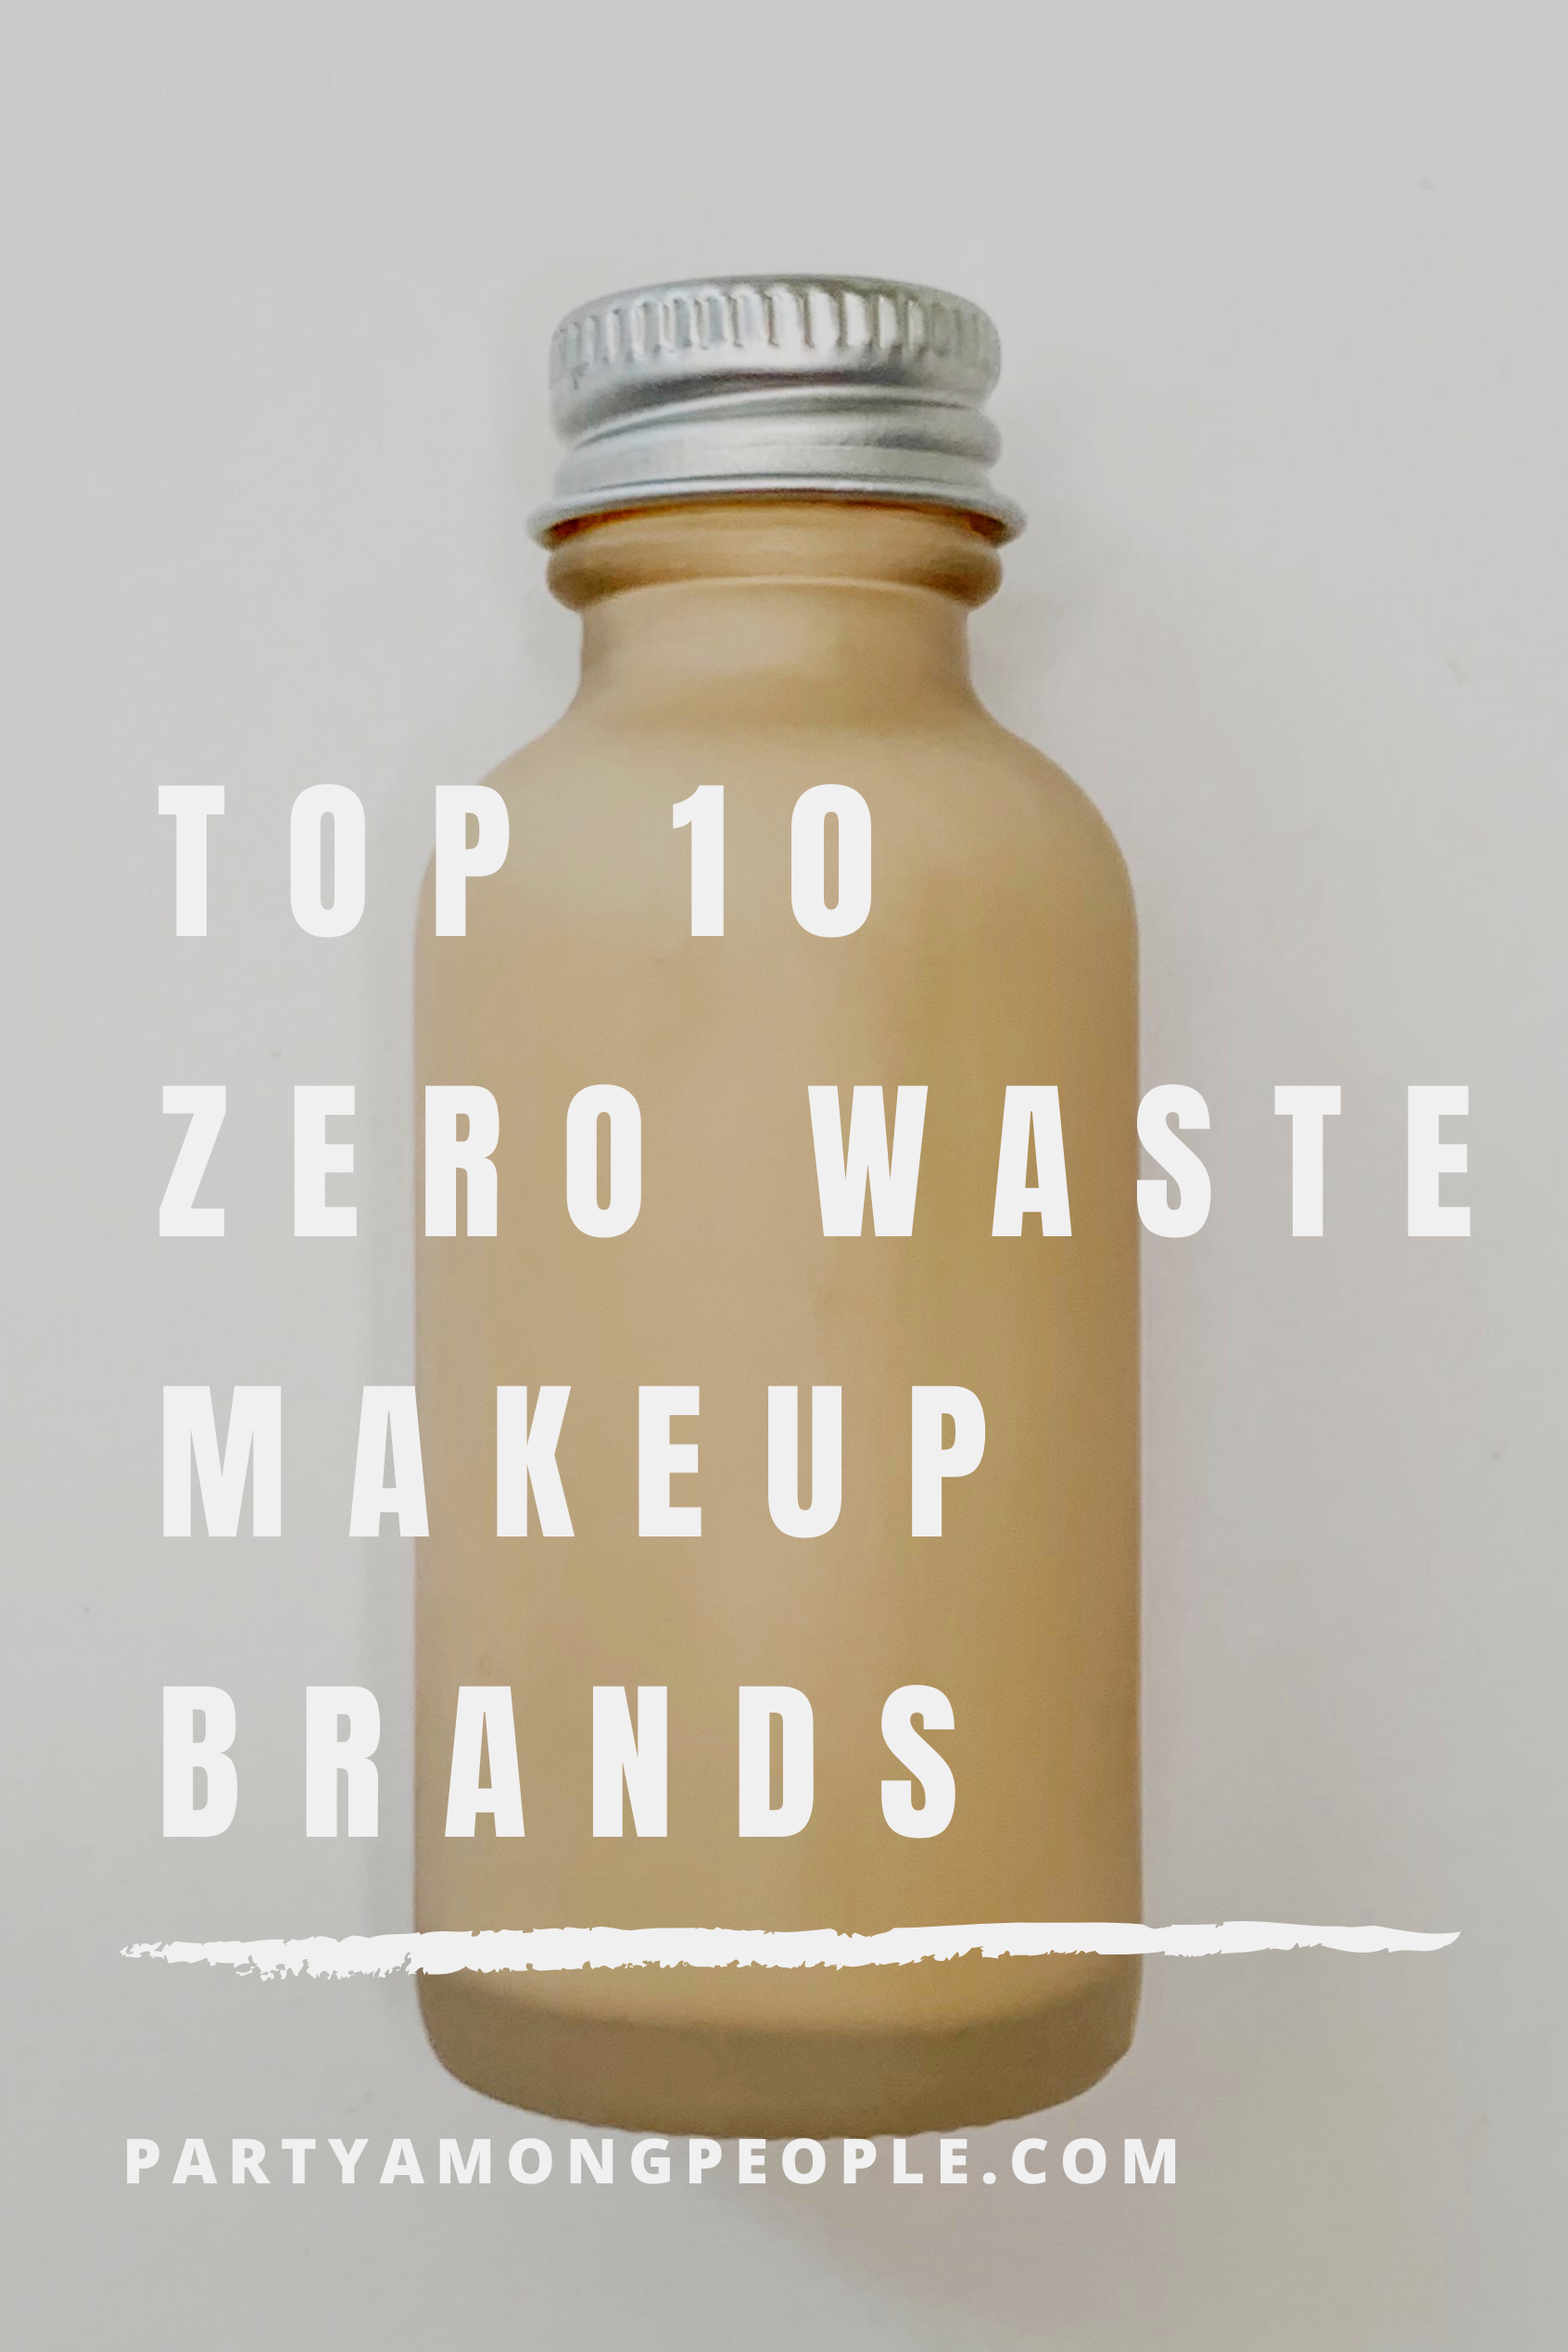 10 ZeroWaste Makeup Brands in 2020 Makeup brands, 10